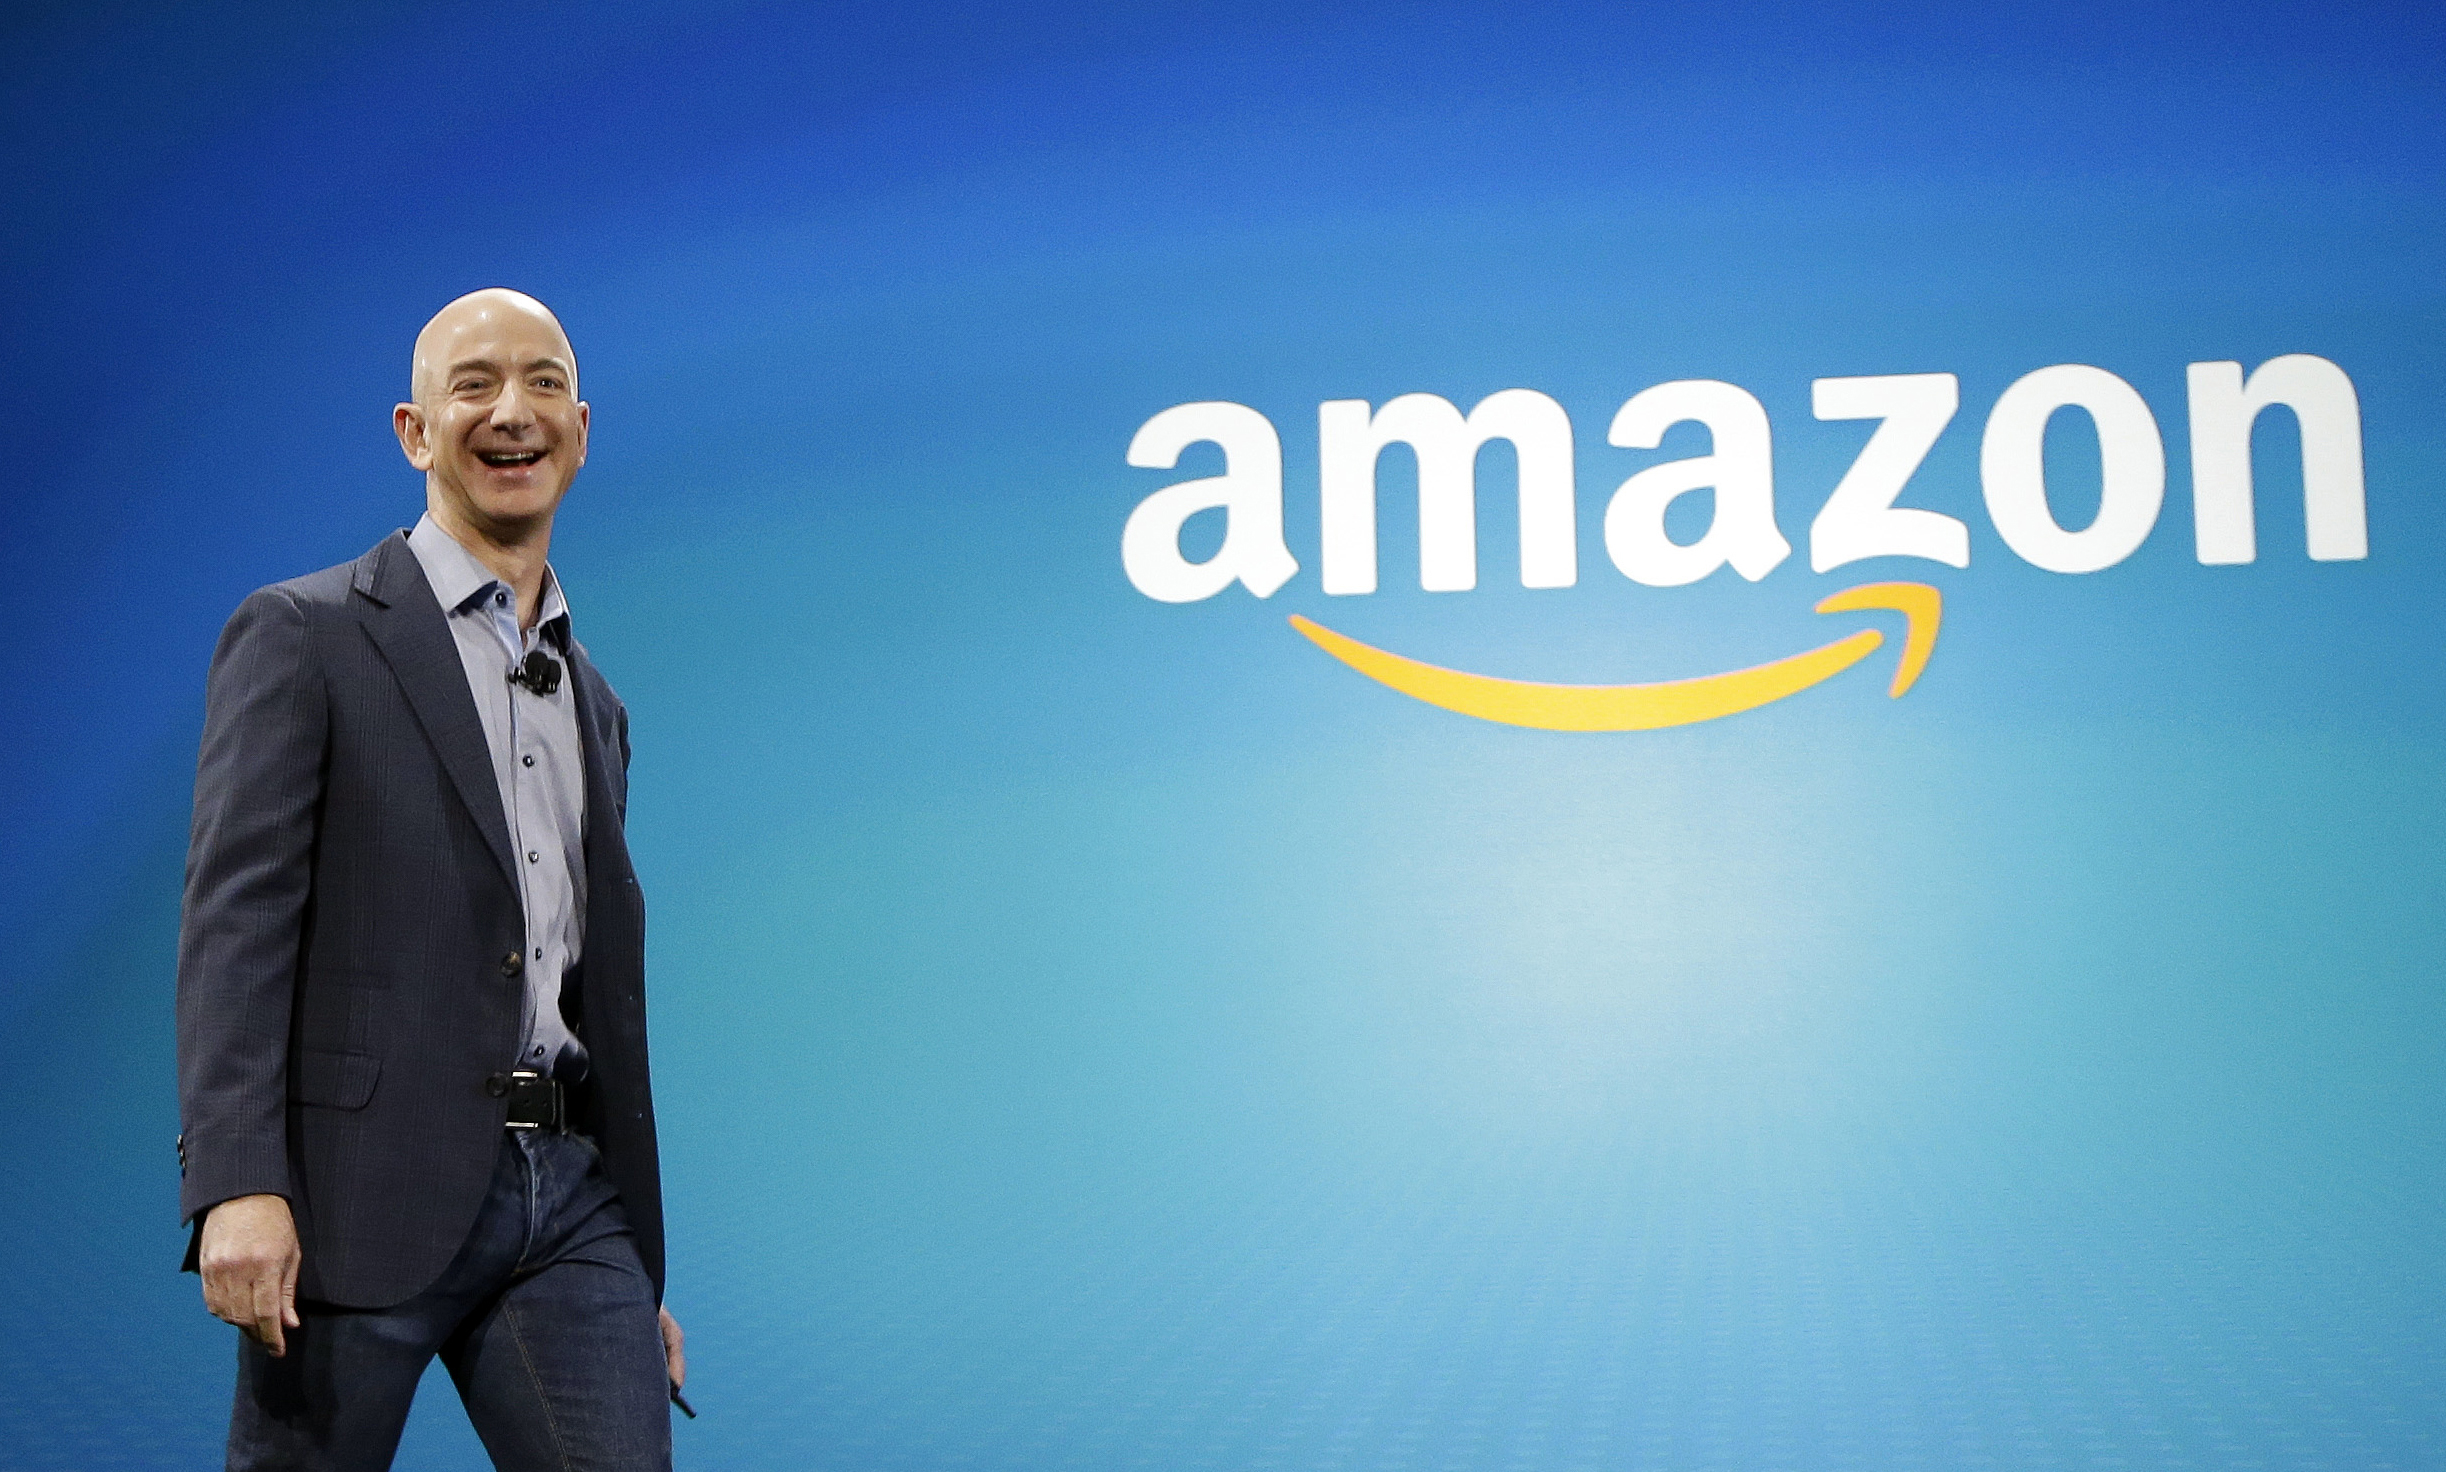 Amazon CEO Jeff Bezos walks onstage for the launch of the new Amazon Fire Phone in Seattle on June 16, 2014.